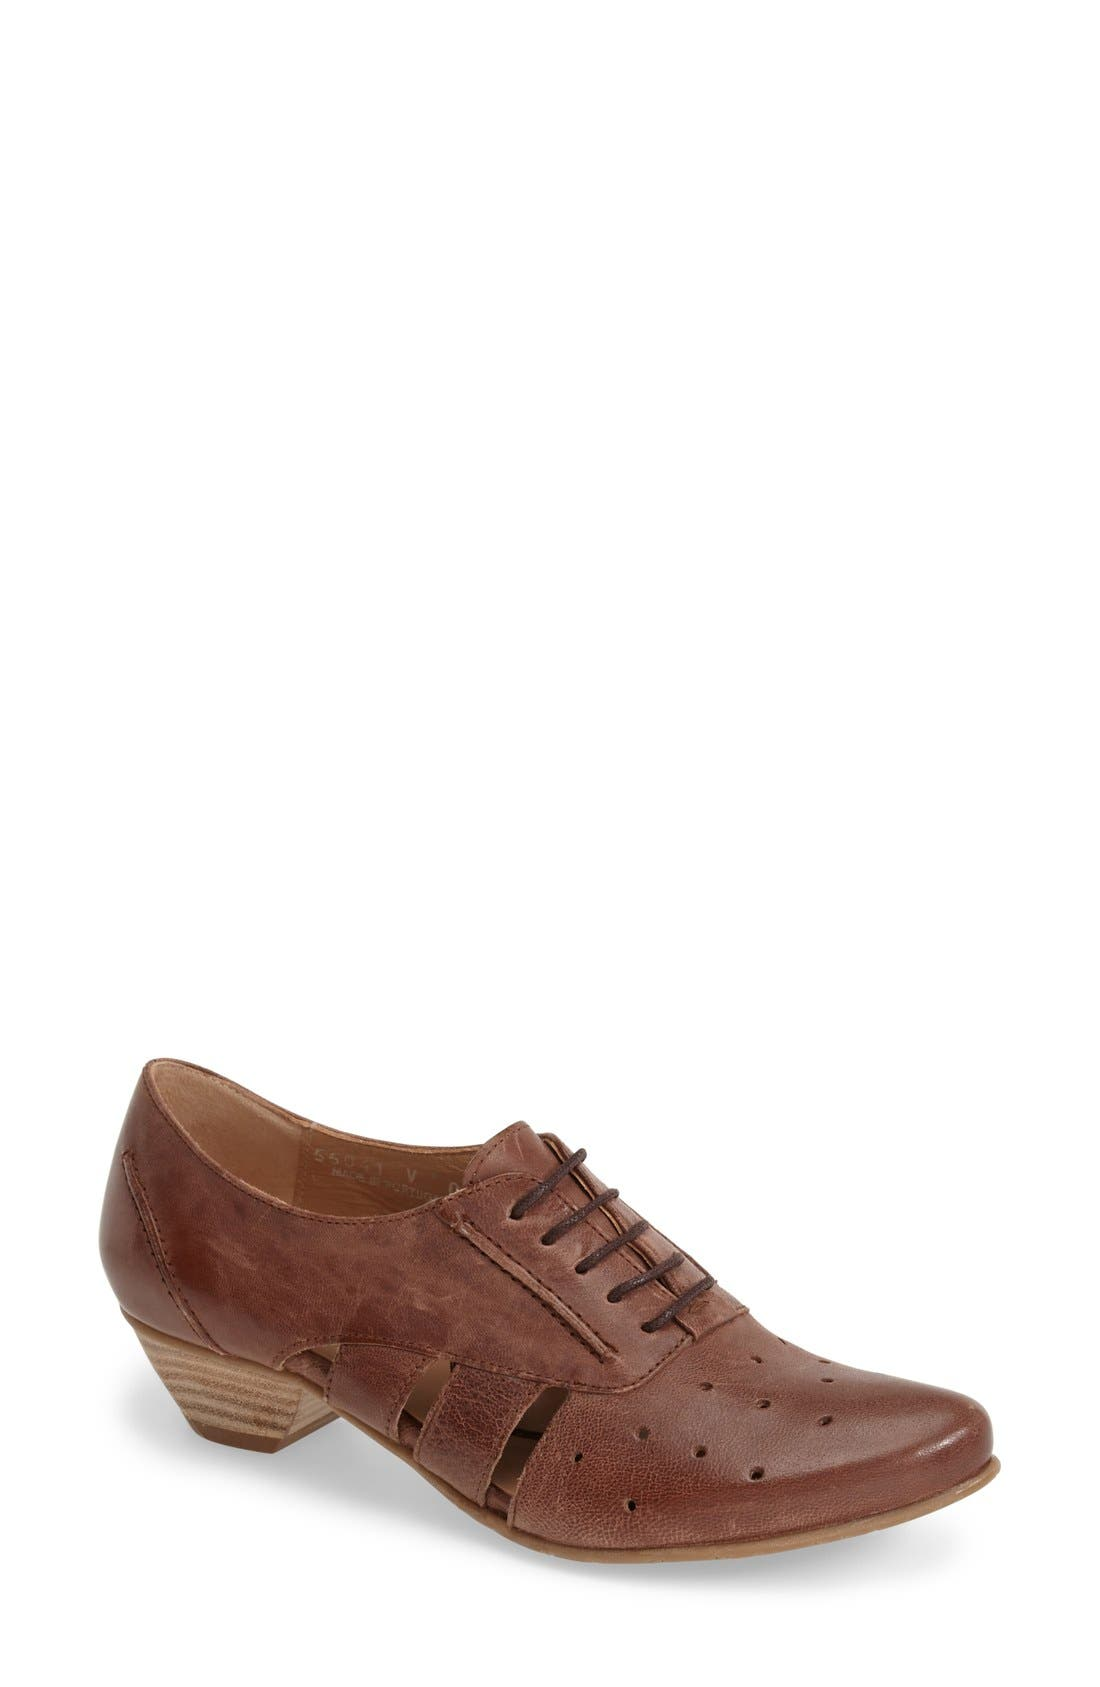 'VO92' Perforated Leather Pump,                         Main,                         color, Brown